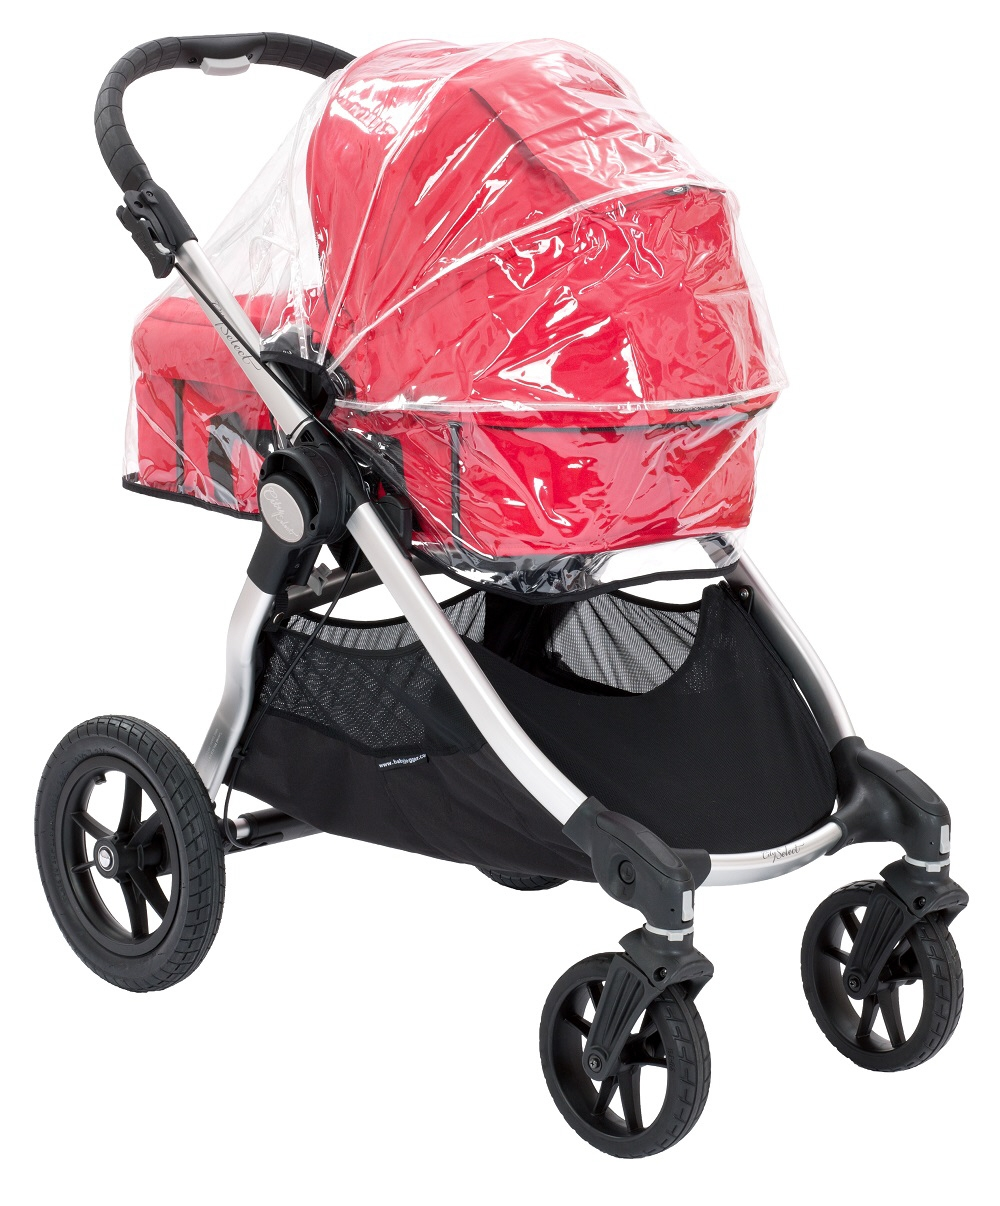 baby jogger city select rain cover for carrycot 2016 buy. Black Bedroom Furniture Sets. Home Design Ideas